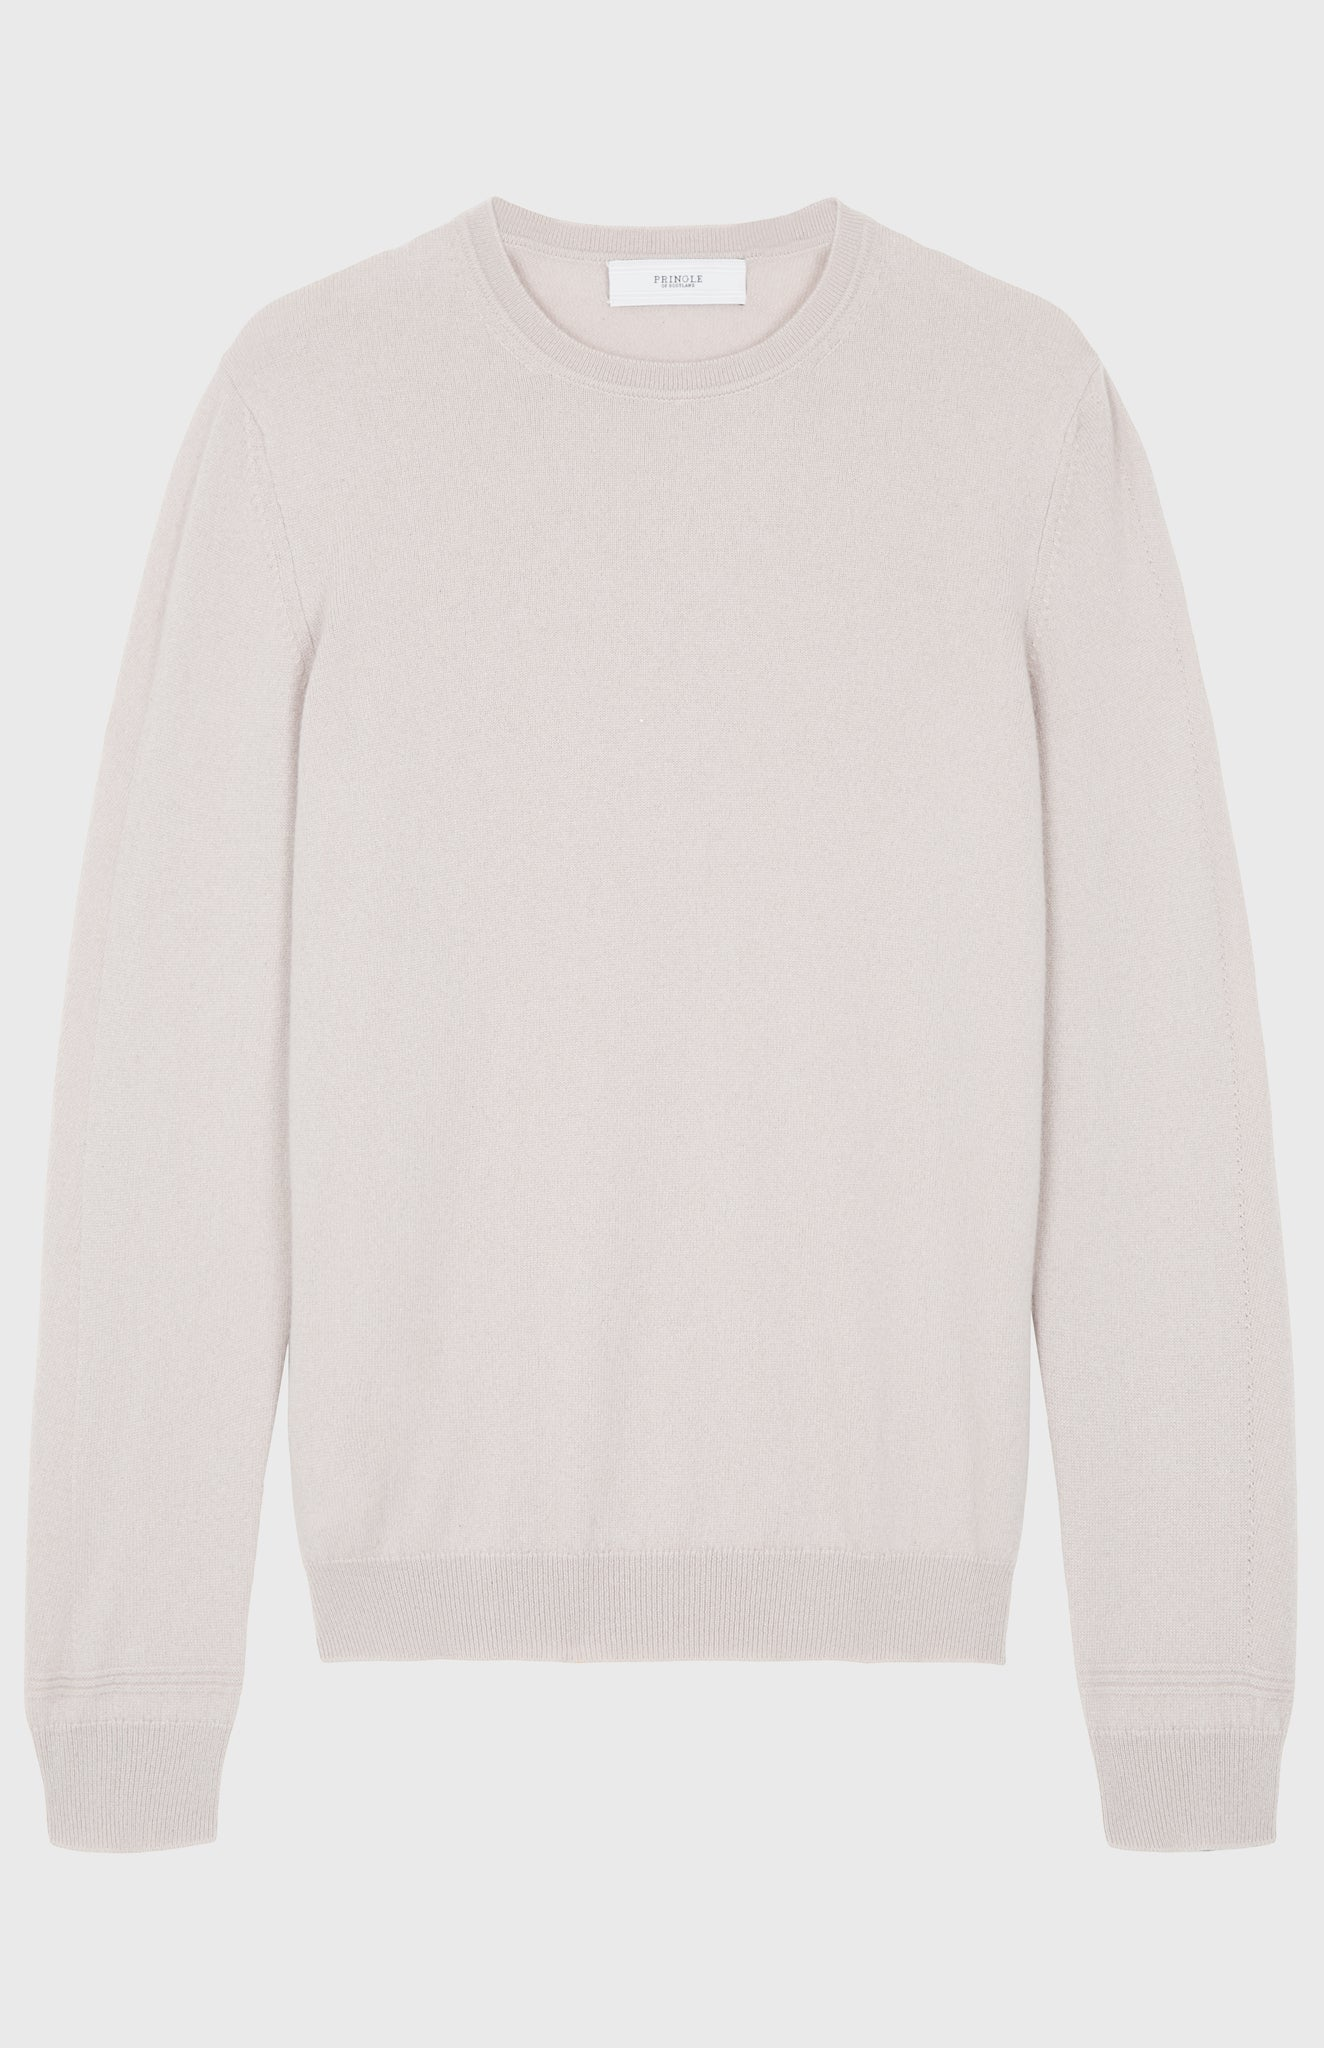 Men's Scottish Cashmere Round Neck Jumper In Pale Sand